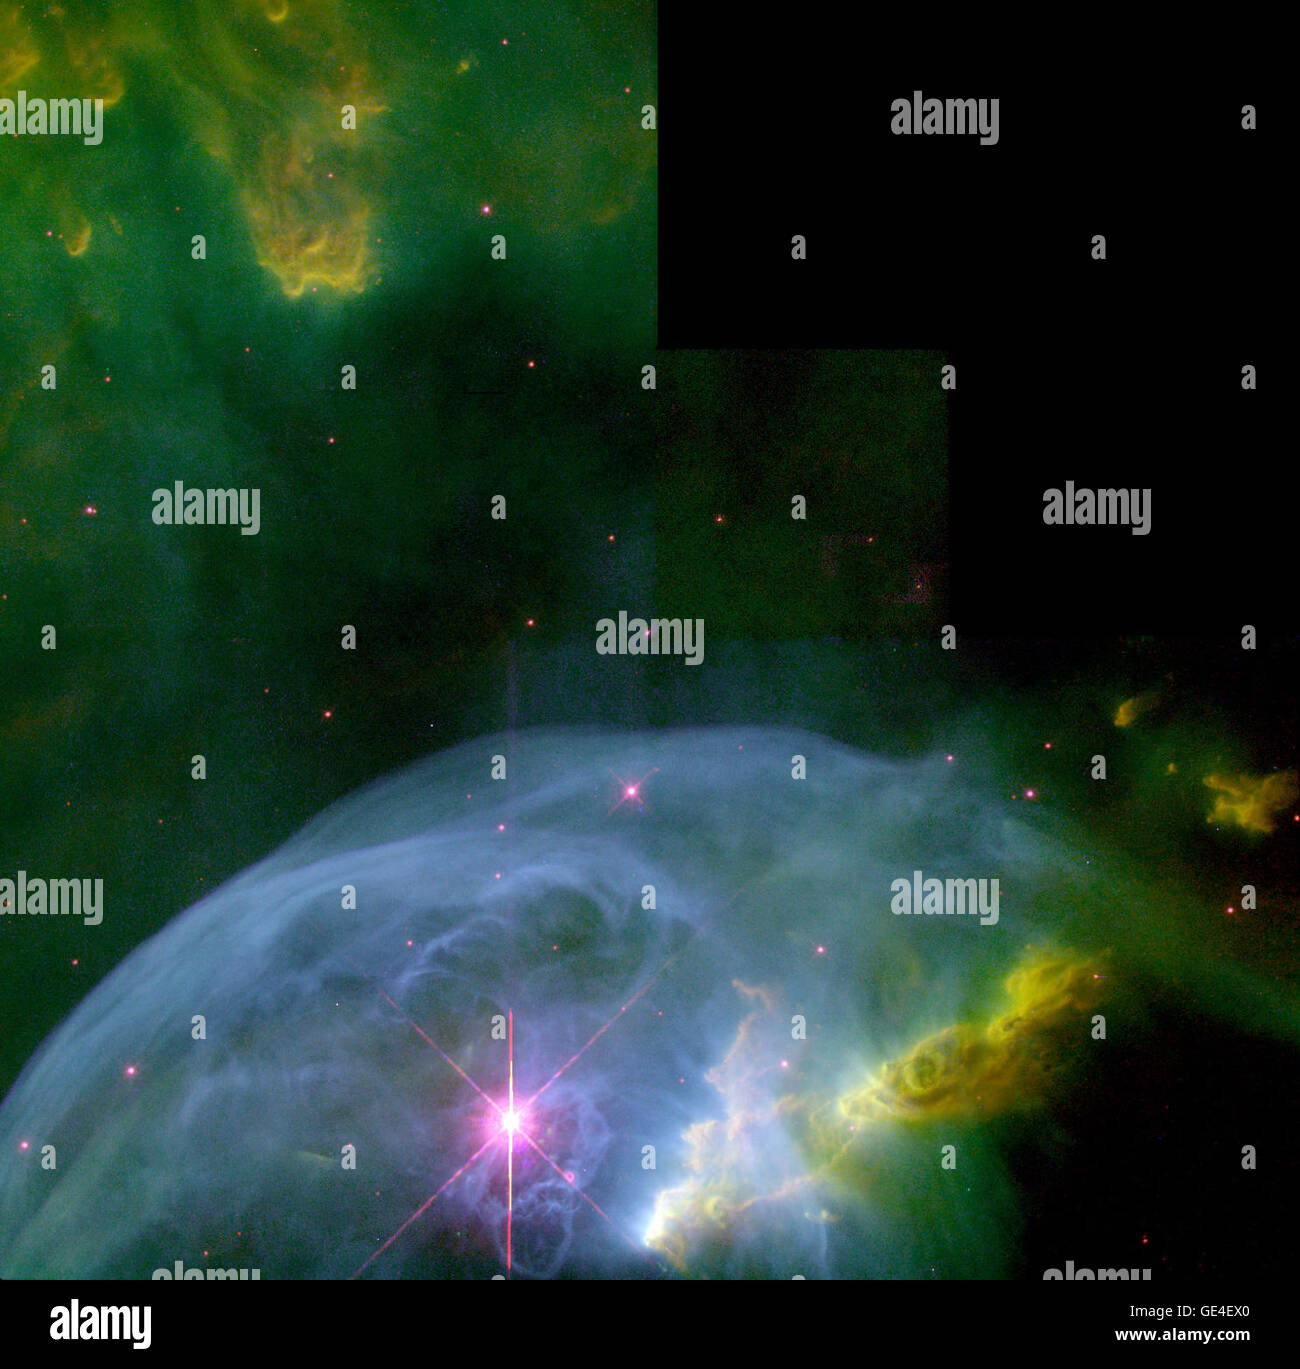 Astronomers, using the Wide Field Planetary Camera 2 on board NASA's Hubble Space Telescope in October and November Stock Photo